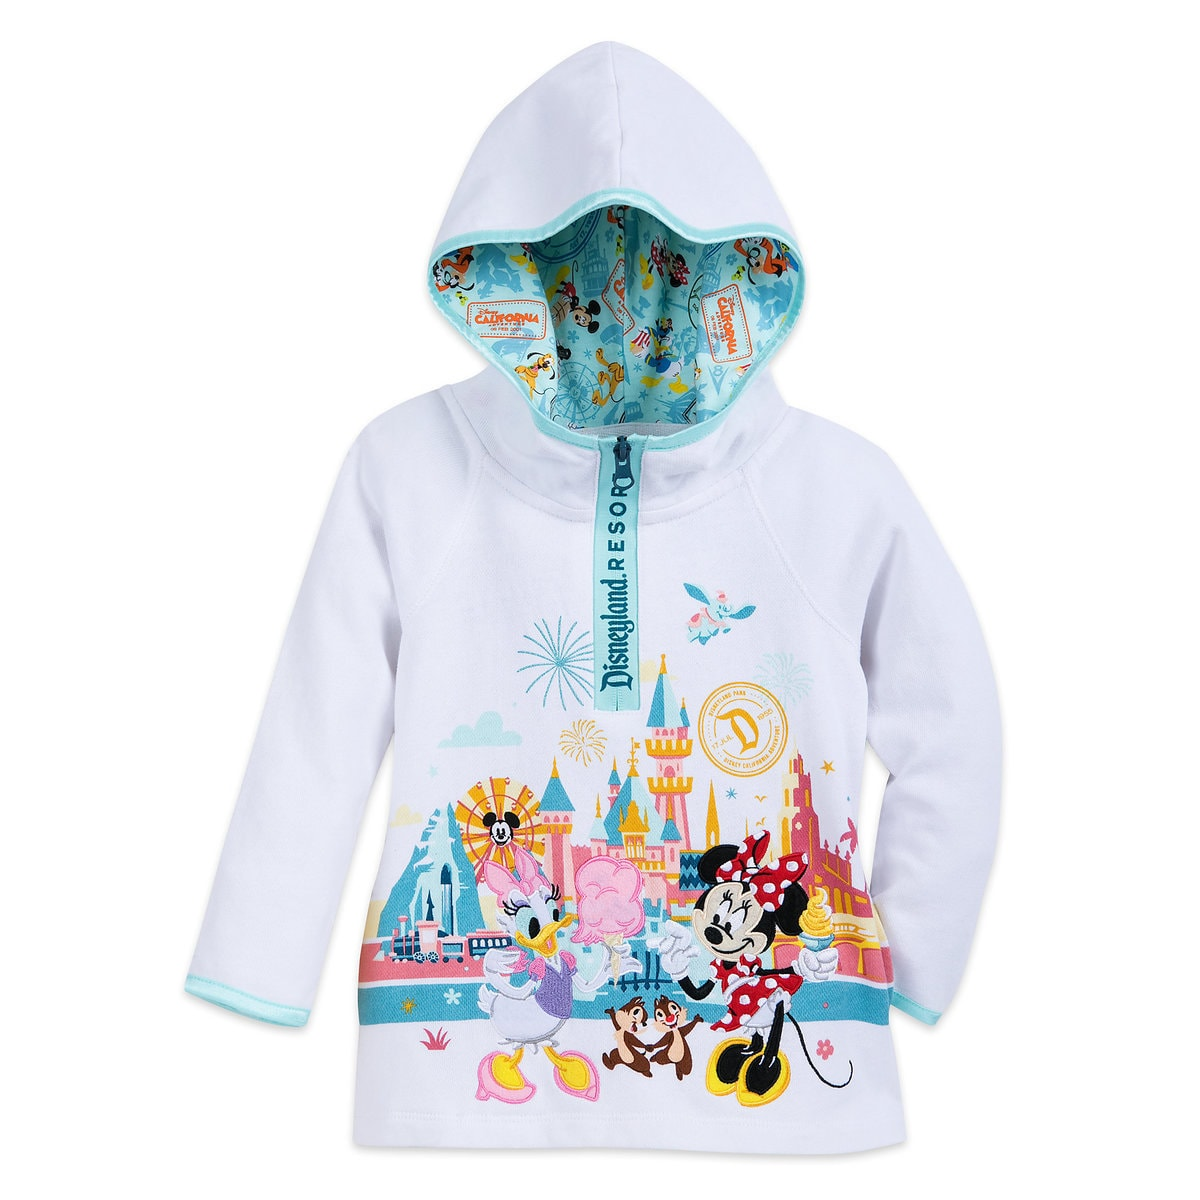 eef262ced Product Image of Minnie Mouse and Friends Pullover Zip Hoodie for Girls -  Disneyland # 1